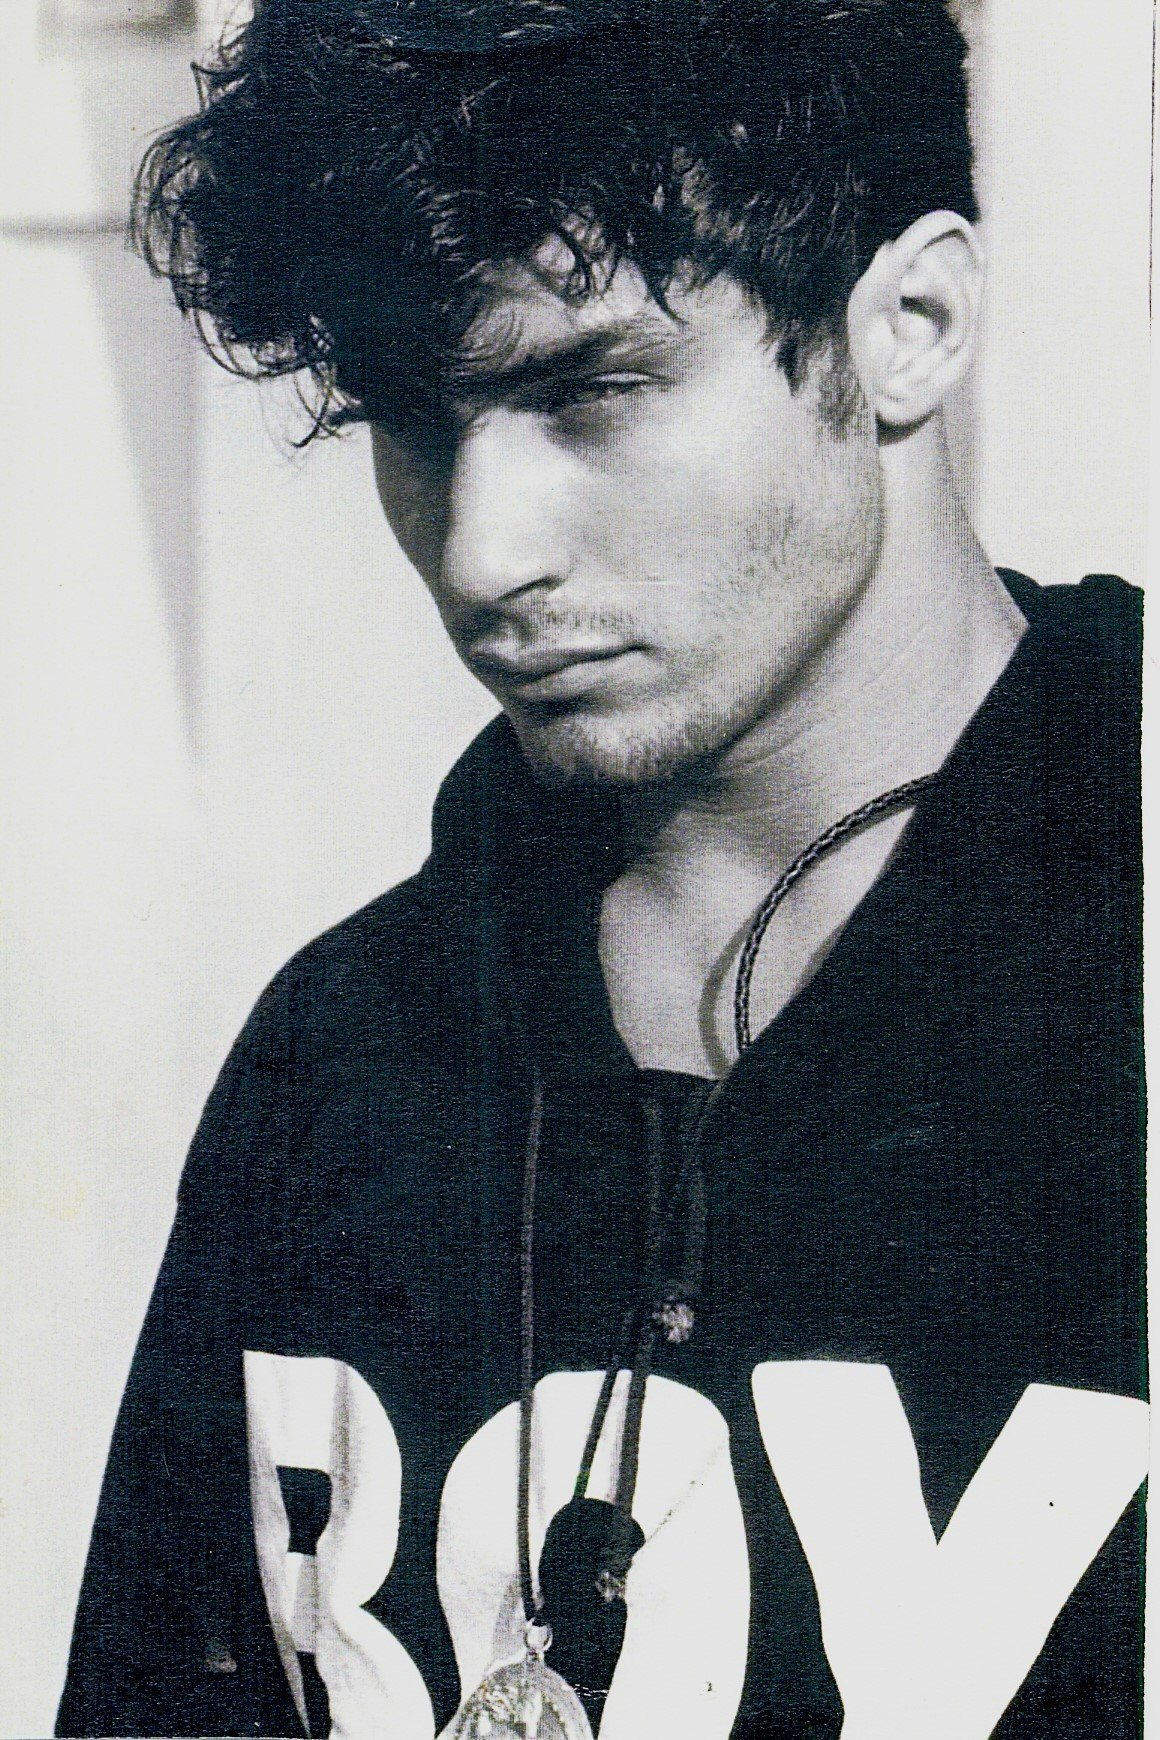 My discovery TOMMY SMITH-  INTL SUPERMODEL who has appeared on the cover of DNR and scores of worldwide magazines.